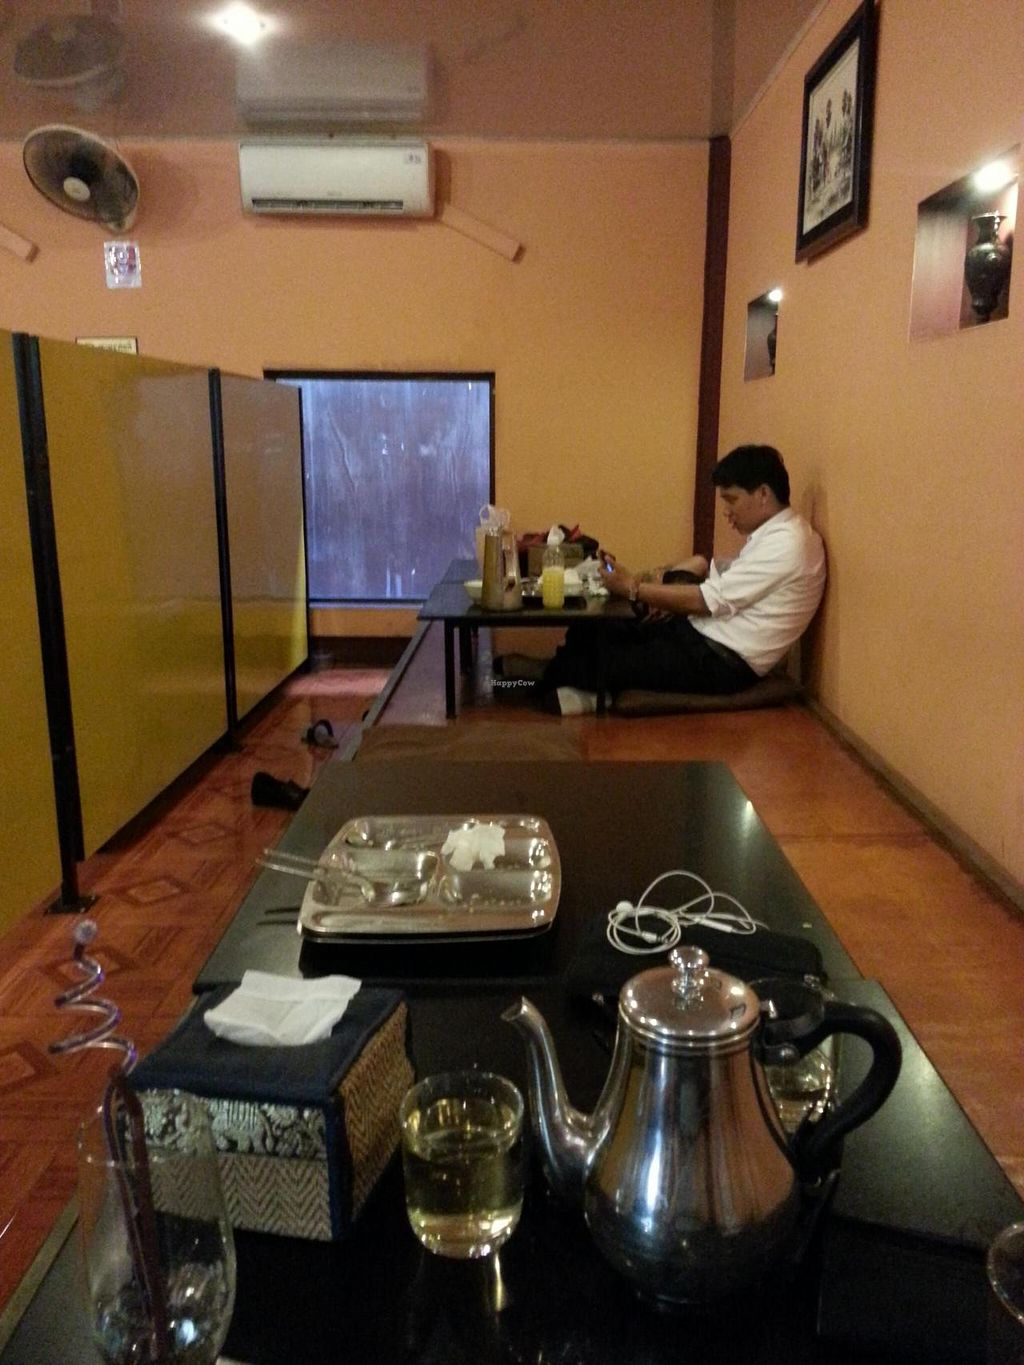 """Photo of Lunar Cafe  by <a href=""""/members/profile/MMills"""">MMills</a> <br/>Floor seating <br/> June 9, 2015  - <a href='/contact/abuse/image/27681/105257'>Report</a>"""